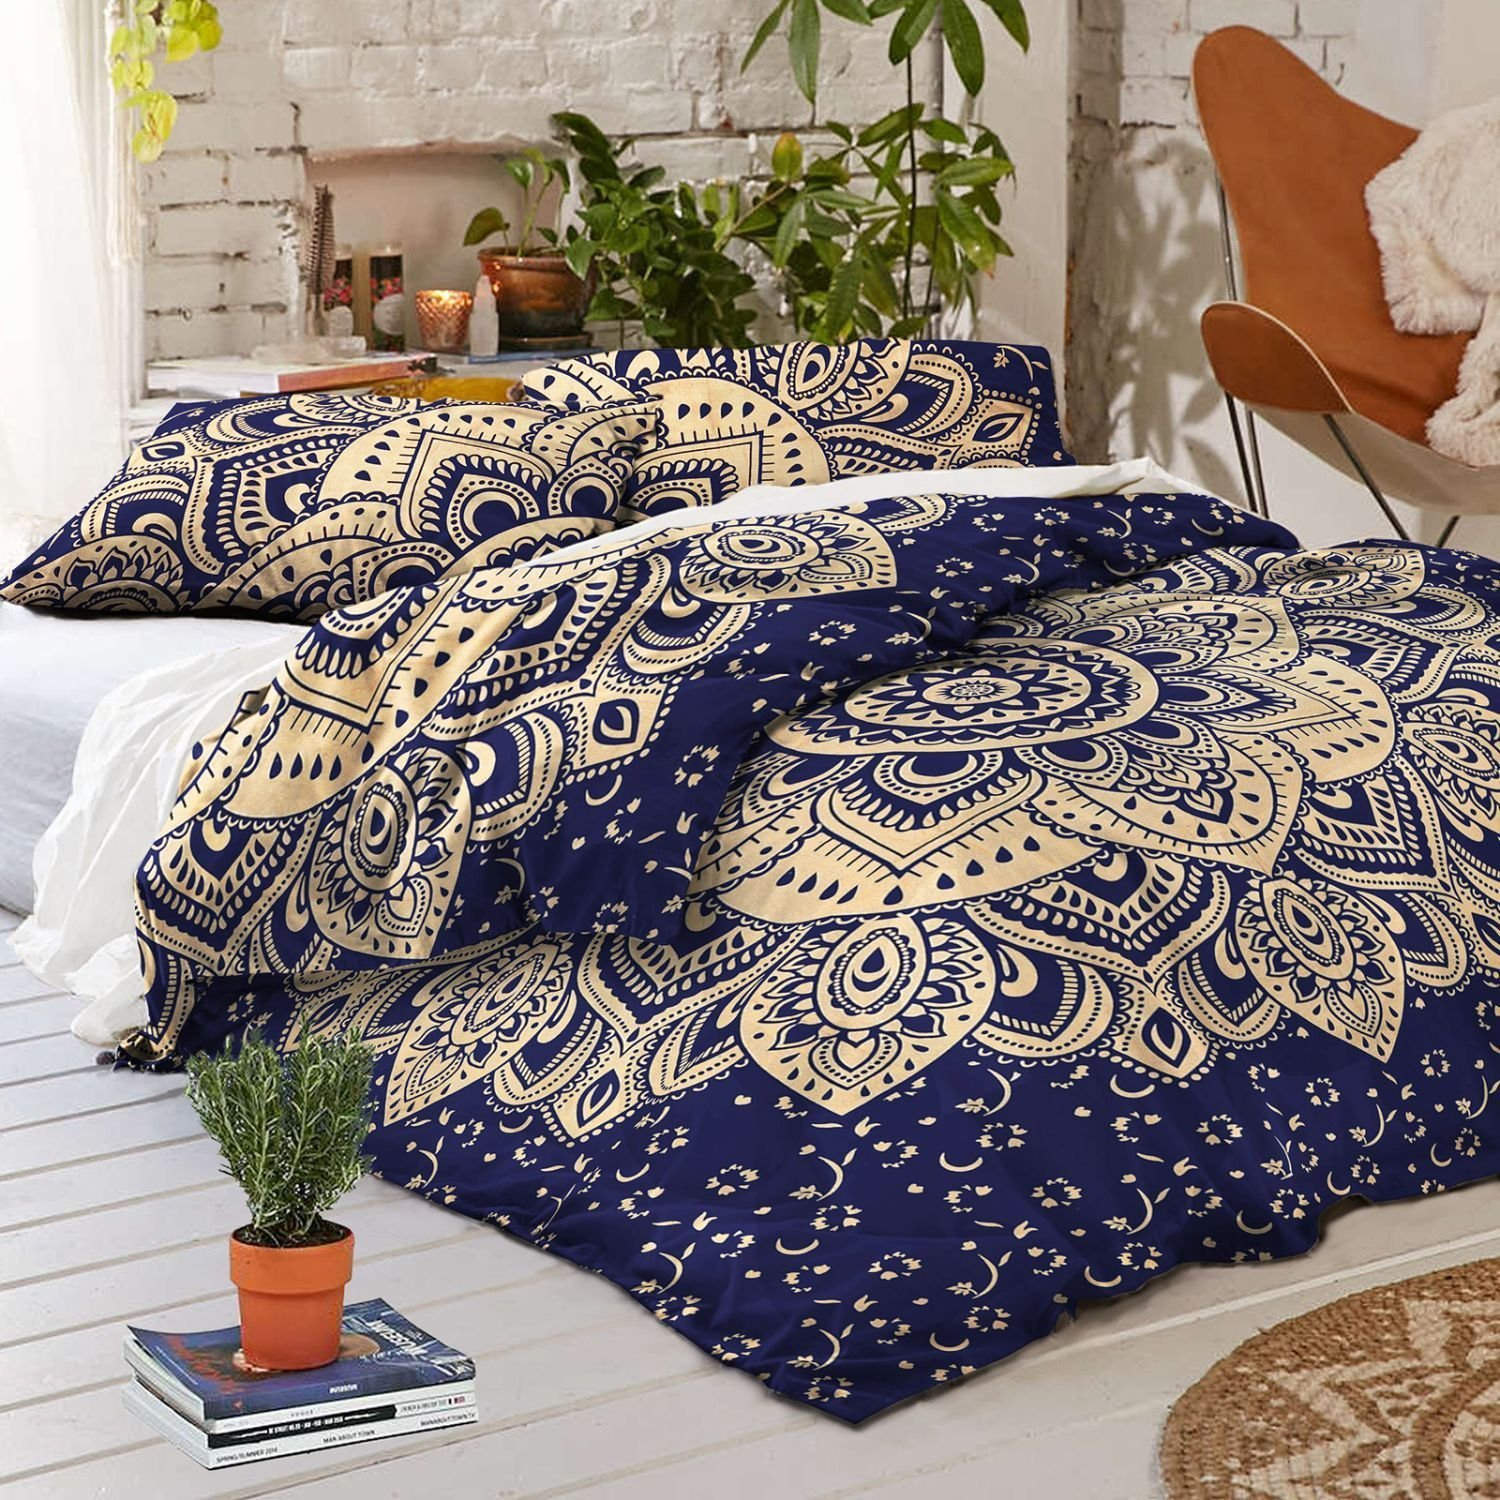 Sophia Art Indian Metallic Gold Ombre Mandala Full Size Comforter Cover Hippie Boho Cotton Doona Duvet Cover Indian Comforter Mandala Set magazine holder Letter Holder